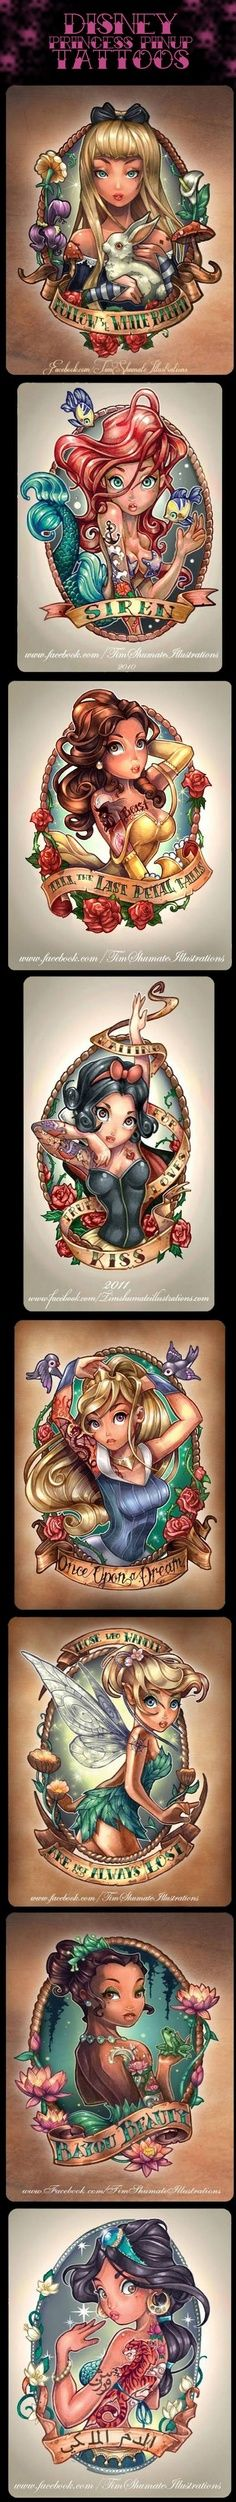 Disney Princess Tattoos Disney tattoos, I love this art idk about inking it for life but its beautiful graphic